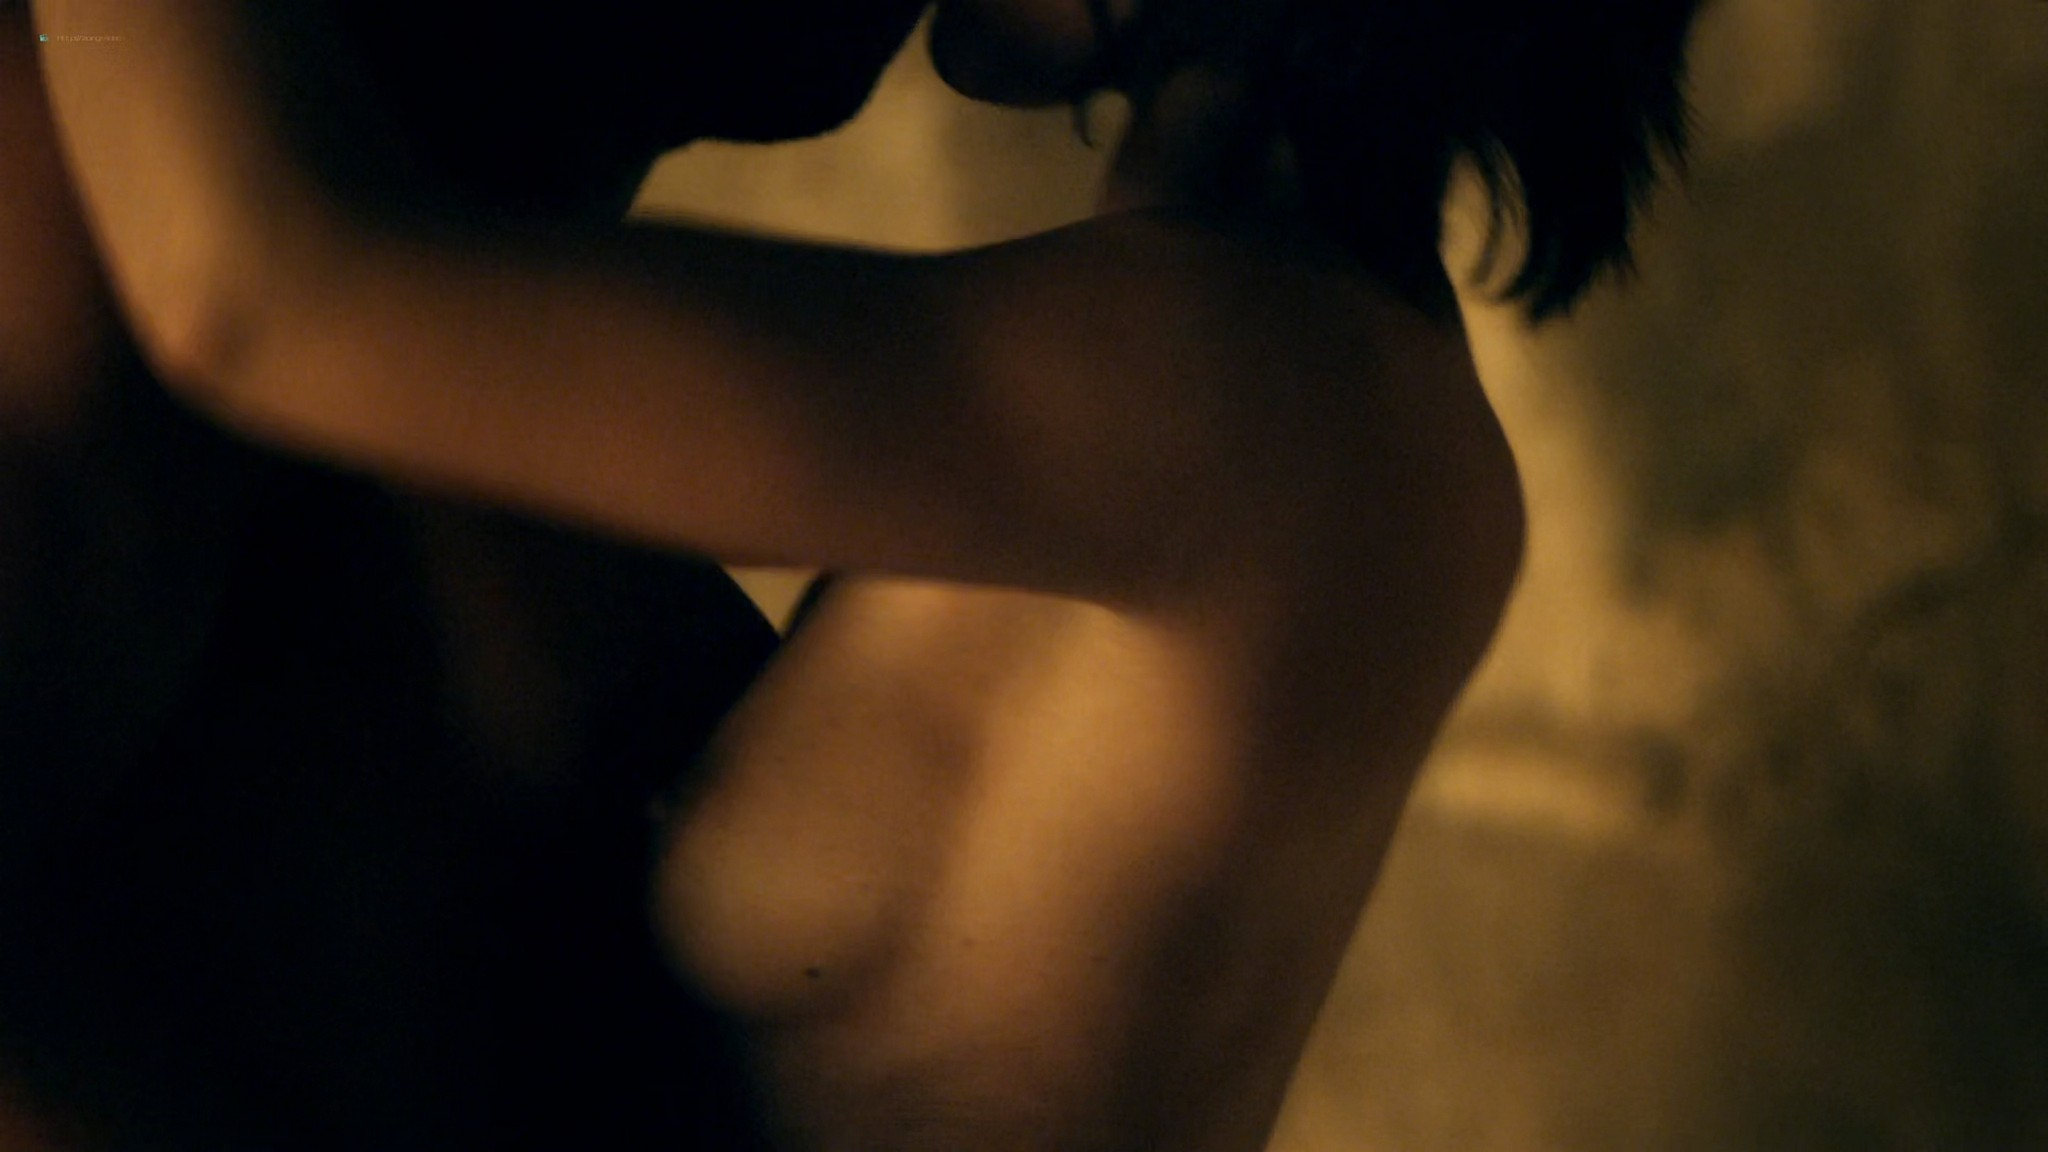 Hanna Mangan Lawrence nude sex Cynthia Addai Robinson and others nude Spartacus vengeance 2012 s2e8 9 HD 1080p BluRay 016